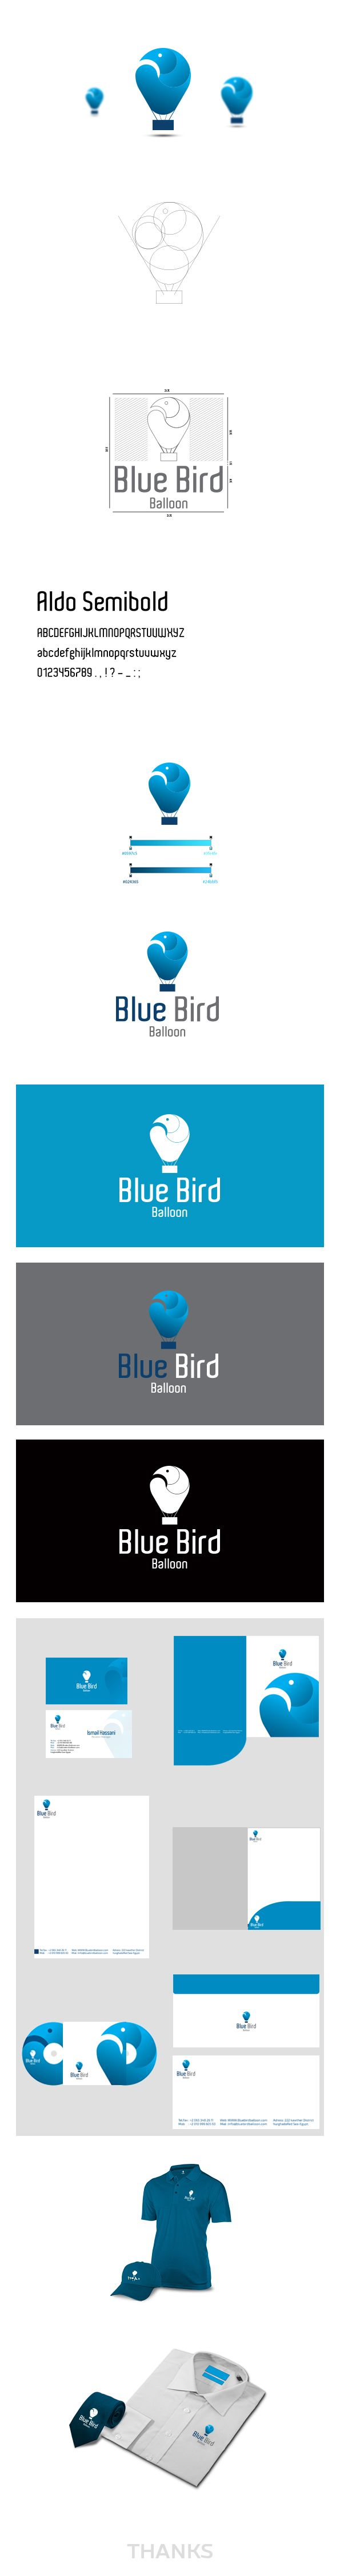 Blue bird balloon The first balloon company in Hurghada - Egypt he hot air balloon is the oldest successful human-carrying flight technology